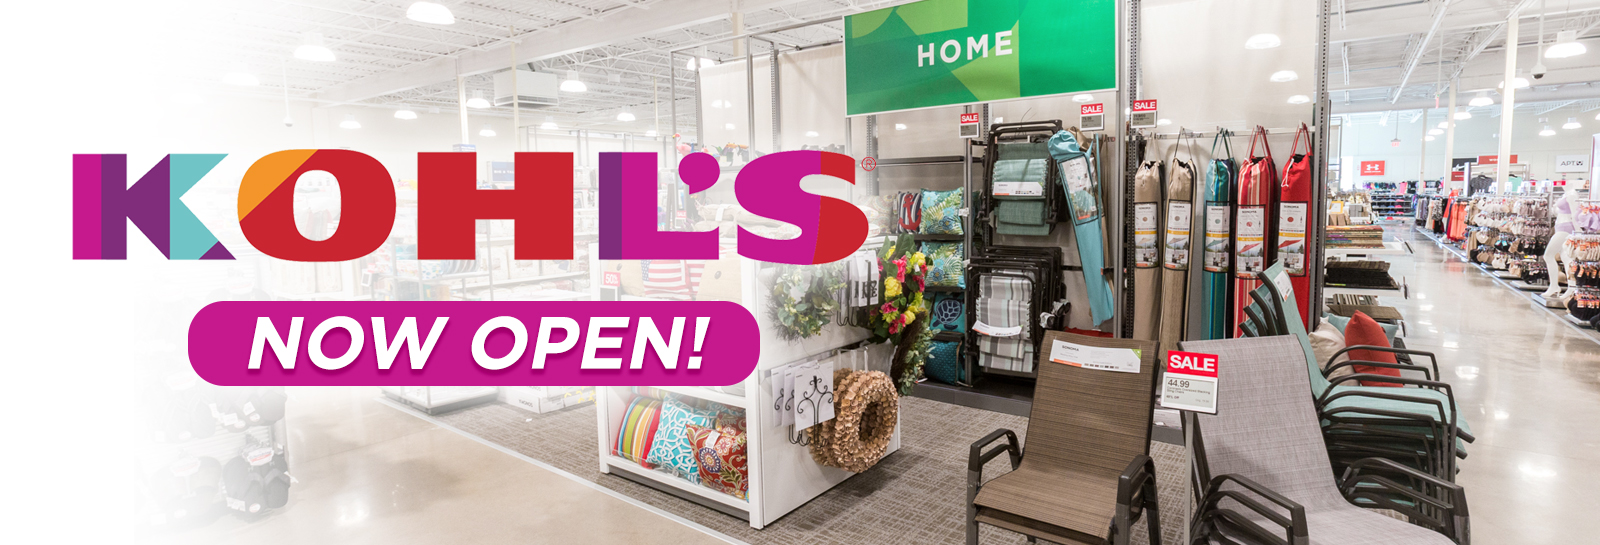 2019 10 02 khols now open slider